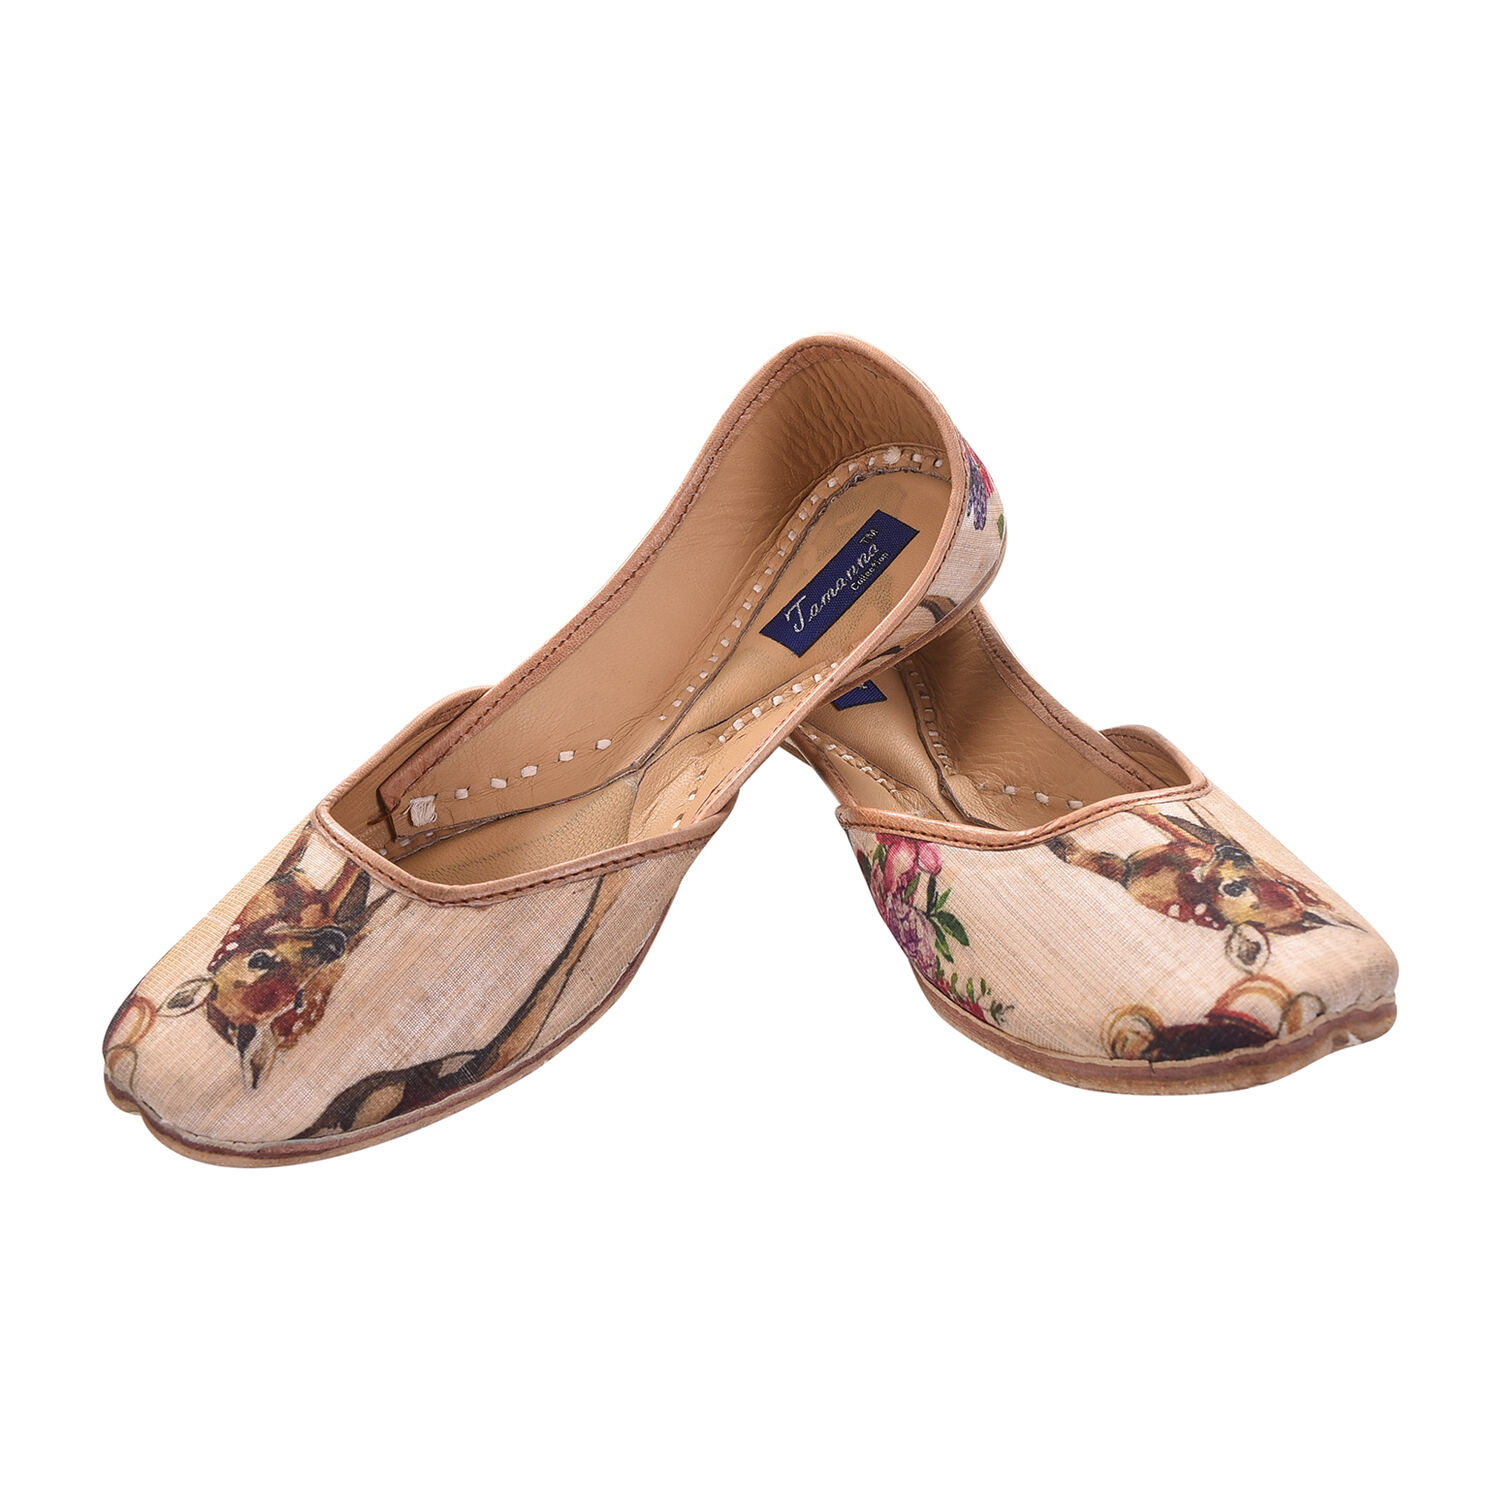 US Size 9 Multicolor Indian Handcrafted Ethnic Khussa Leather Mojari Multicolor 9 For Women bc4892